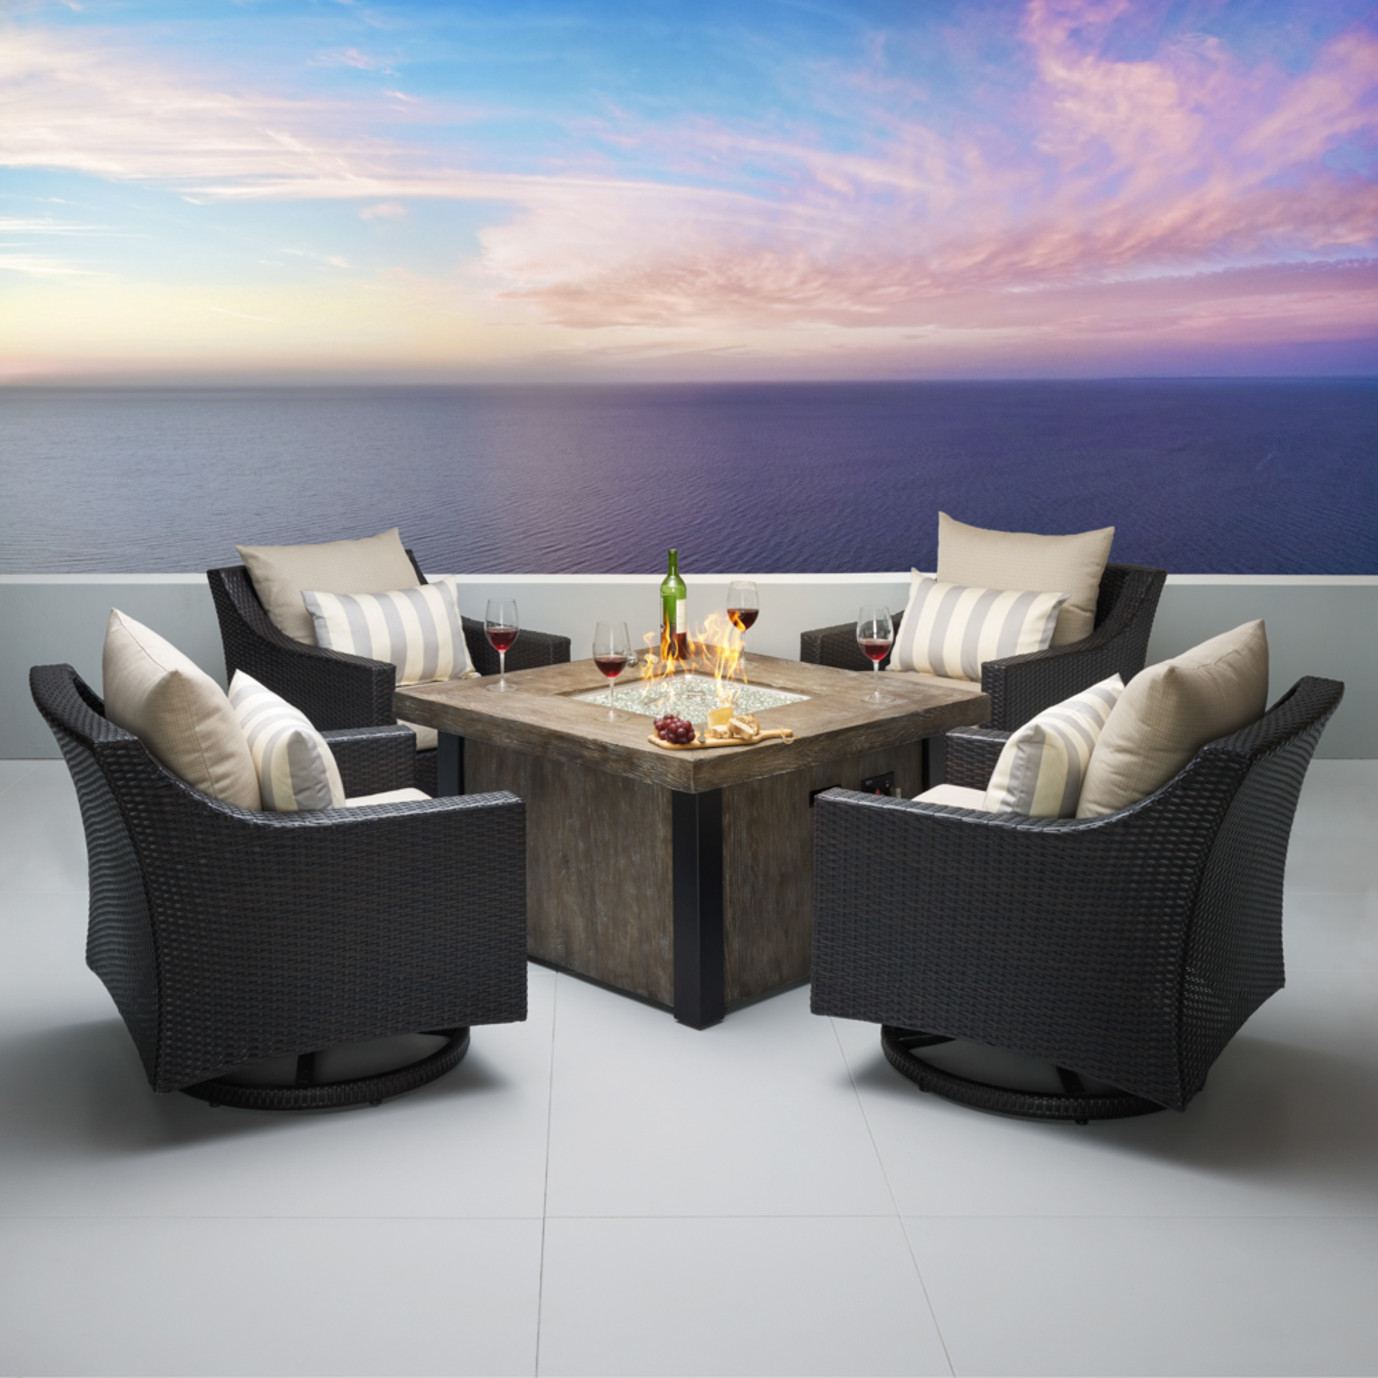 Deco™ 5pc Motion Fire Chat Set in Slate Gray